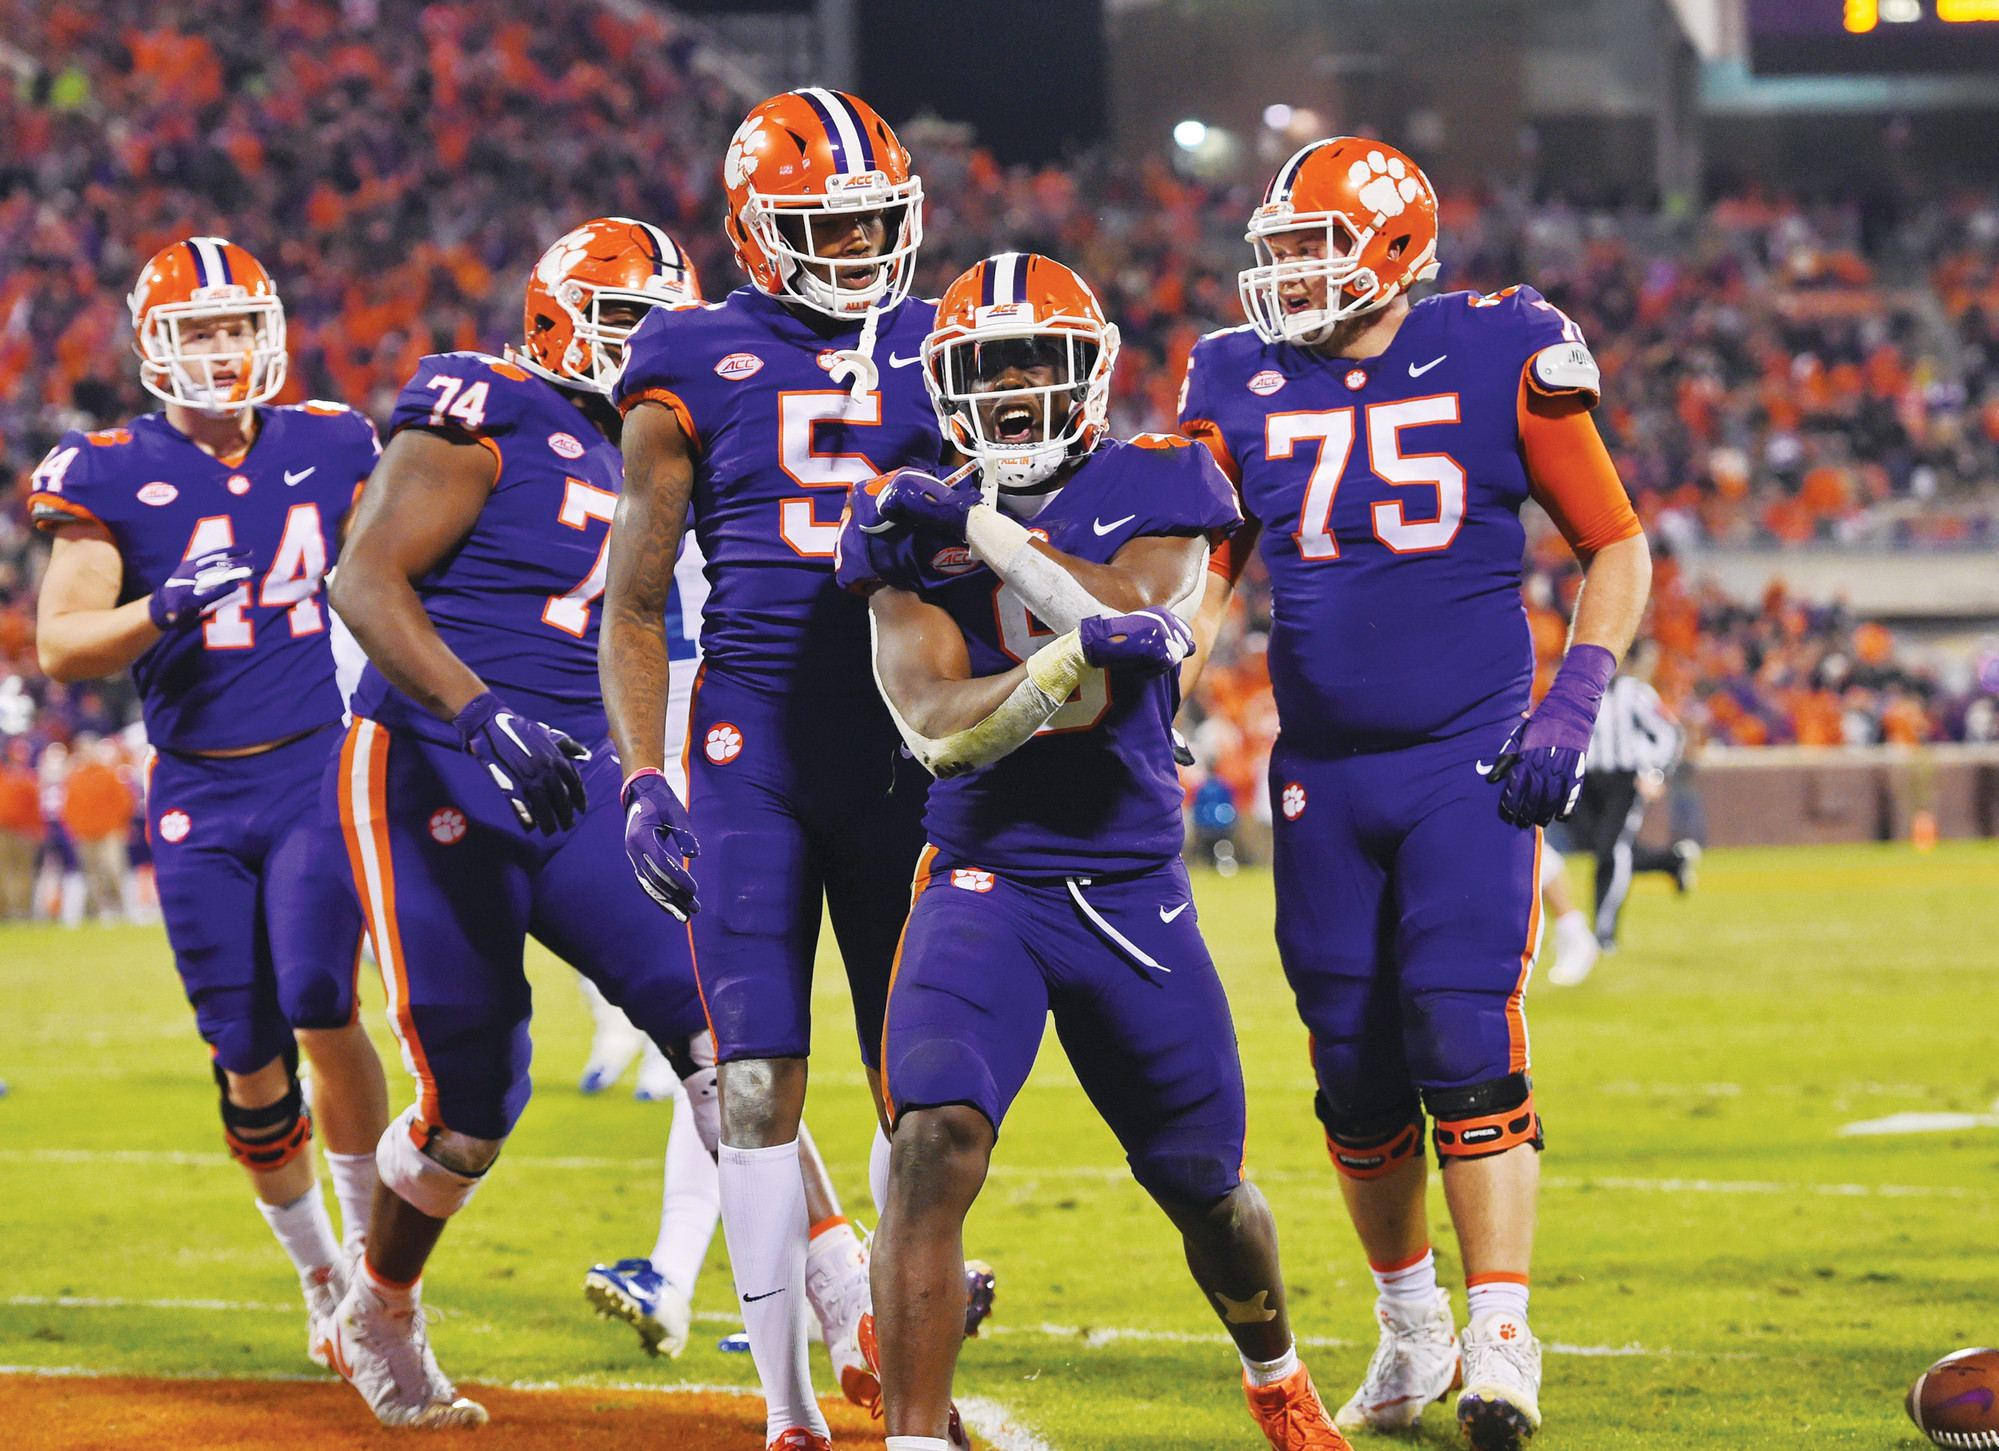 Clemson's Travis Etienne, front, celebrates an insurance touchdown with teammates during the second half of the Tigers' 21-13 victory over Duke last week in Clemson. Clemson hosts South Carolina on Saturday in the 116th meeting between the two schools.